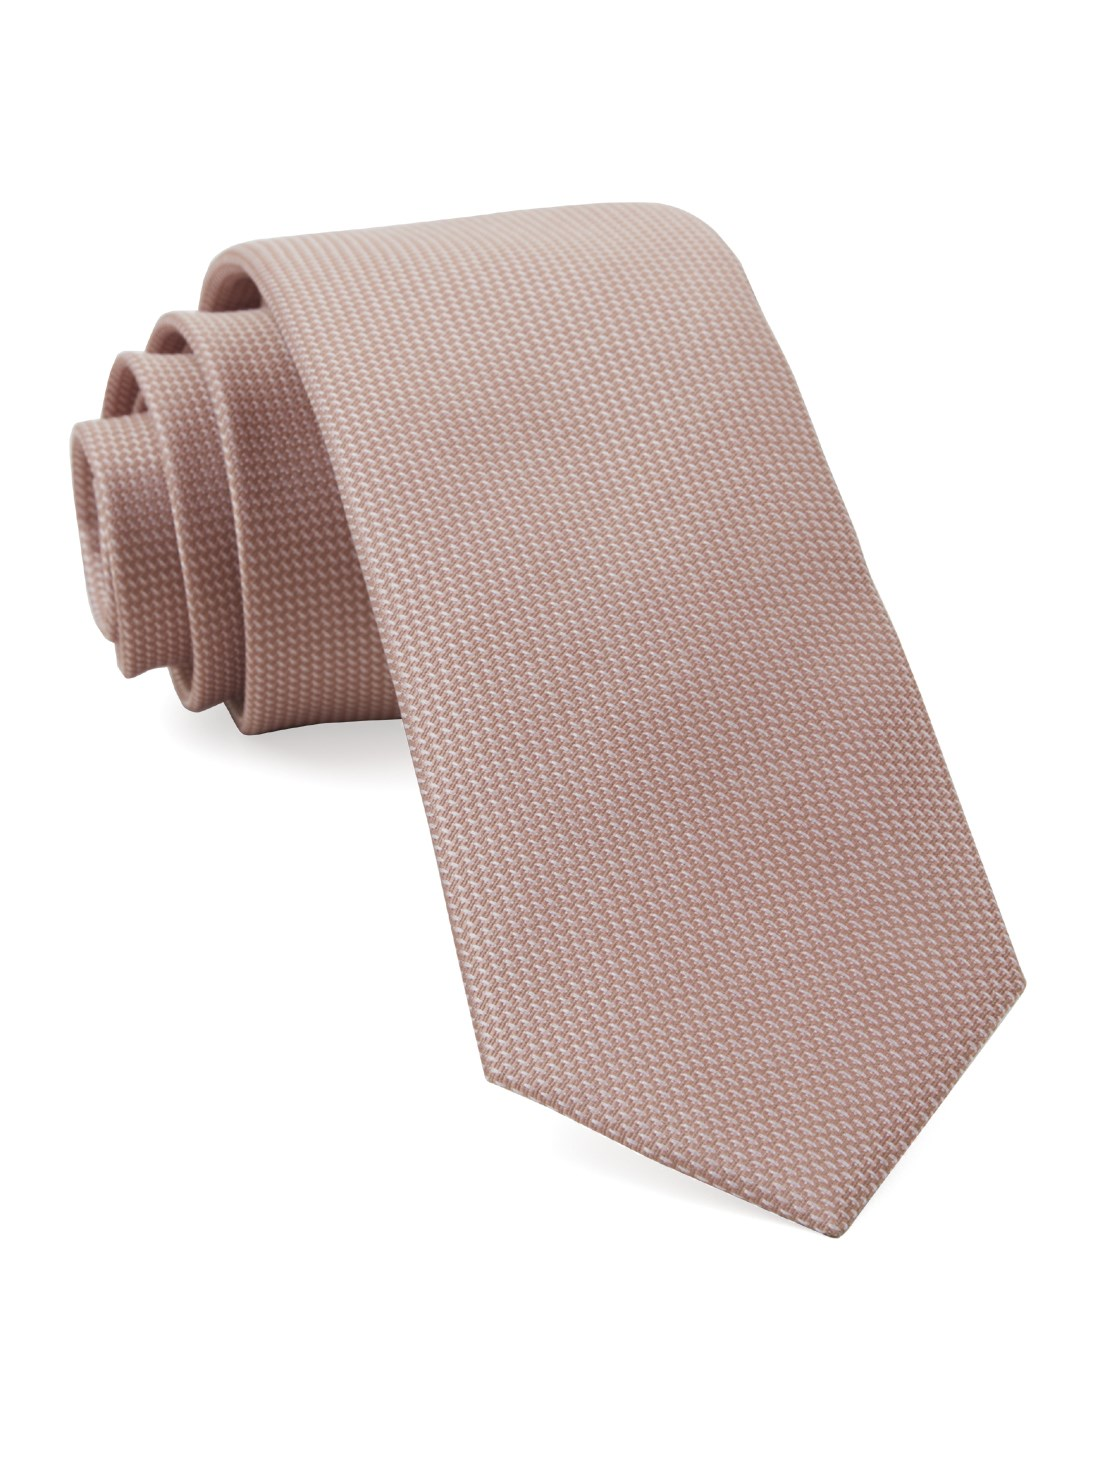 """Union Solid - Blush Pink - 2.5"""" x 58"""" - Ties"""